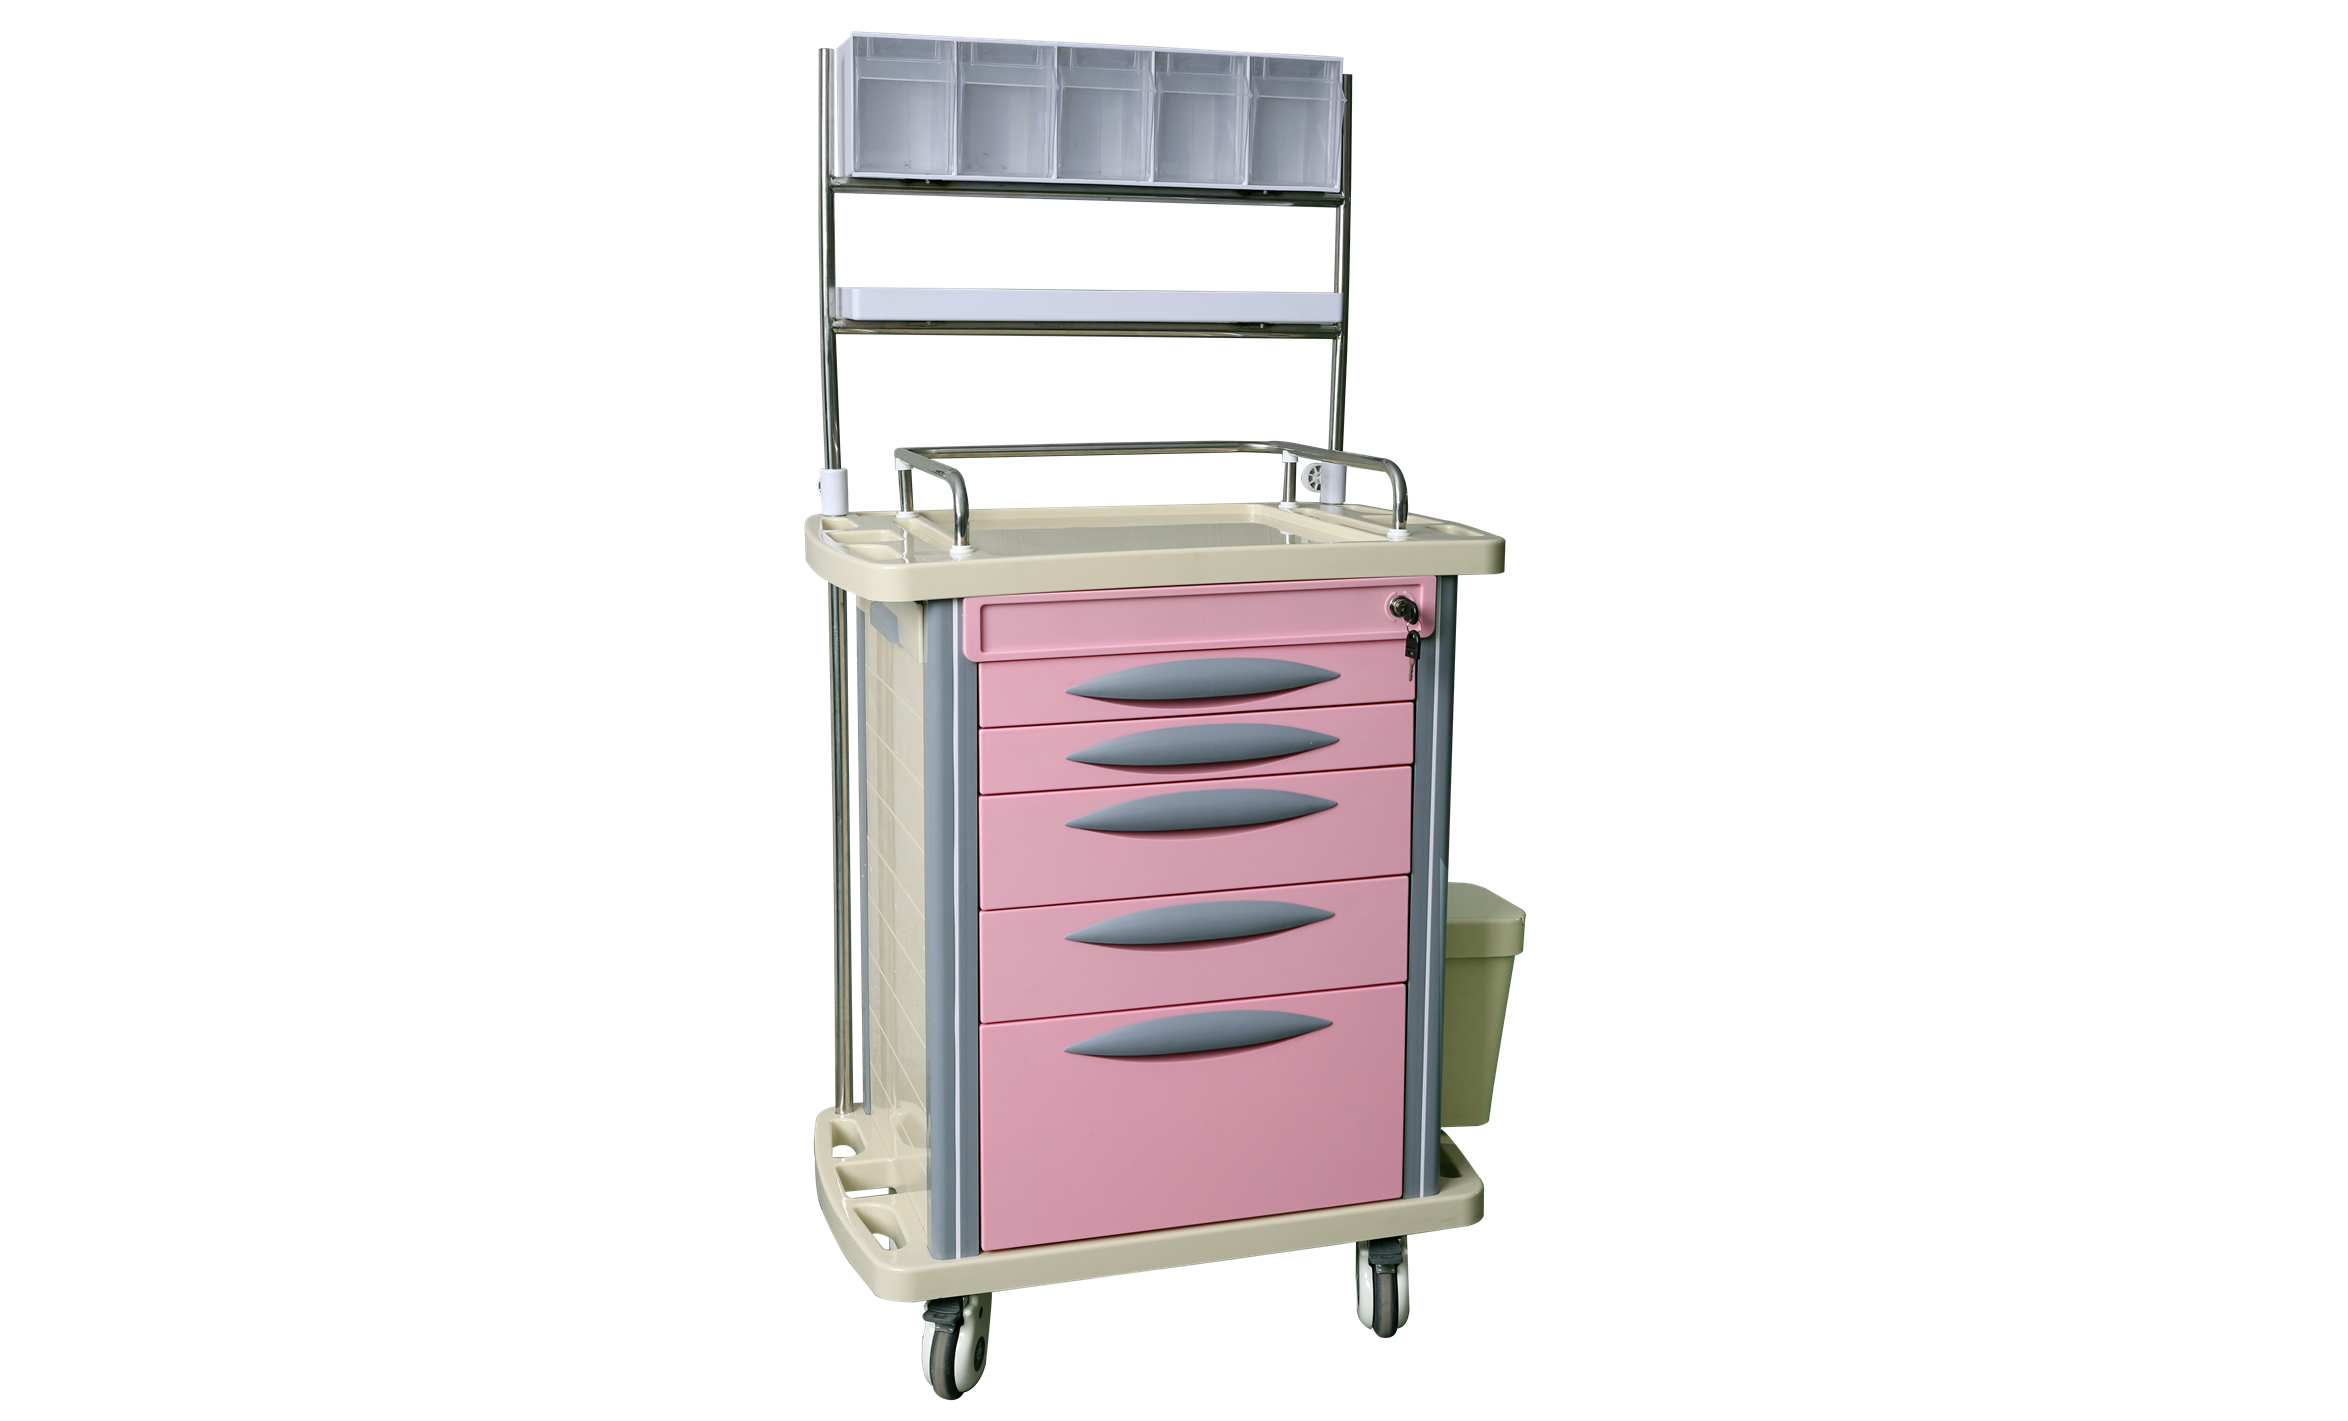 DW-AT009 Anesthesia trolley